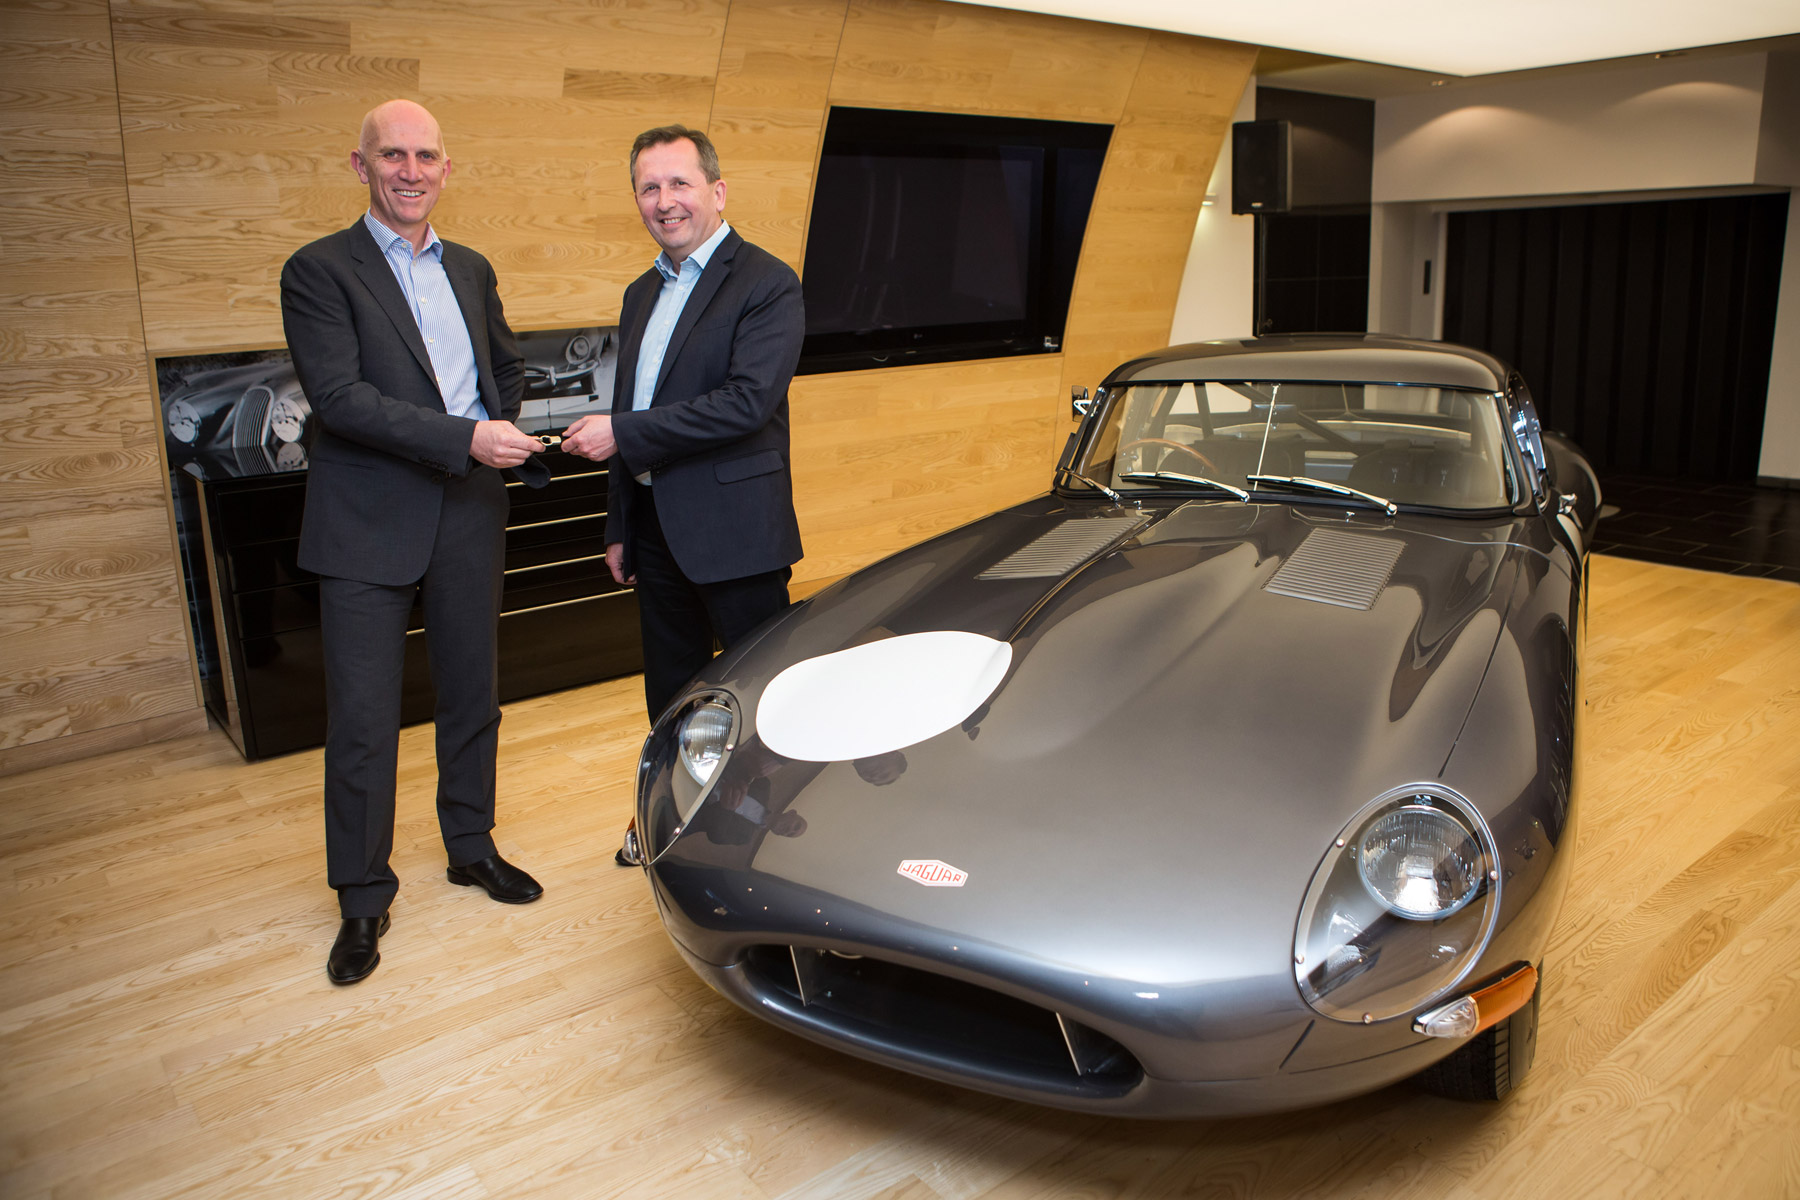 2015 Jaguar Lightweight E-type Chassis 15 Heads To Stratstone of Mayfair